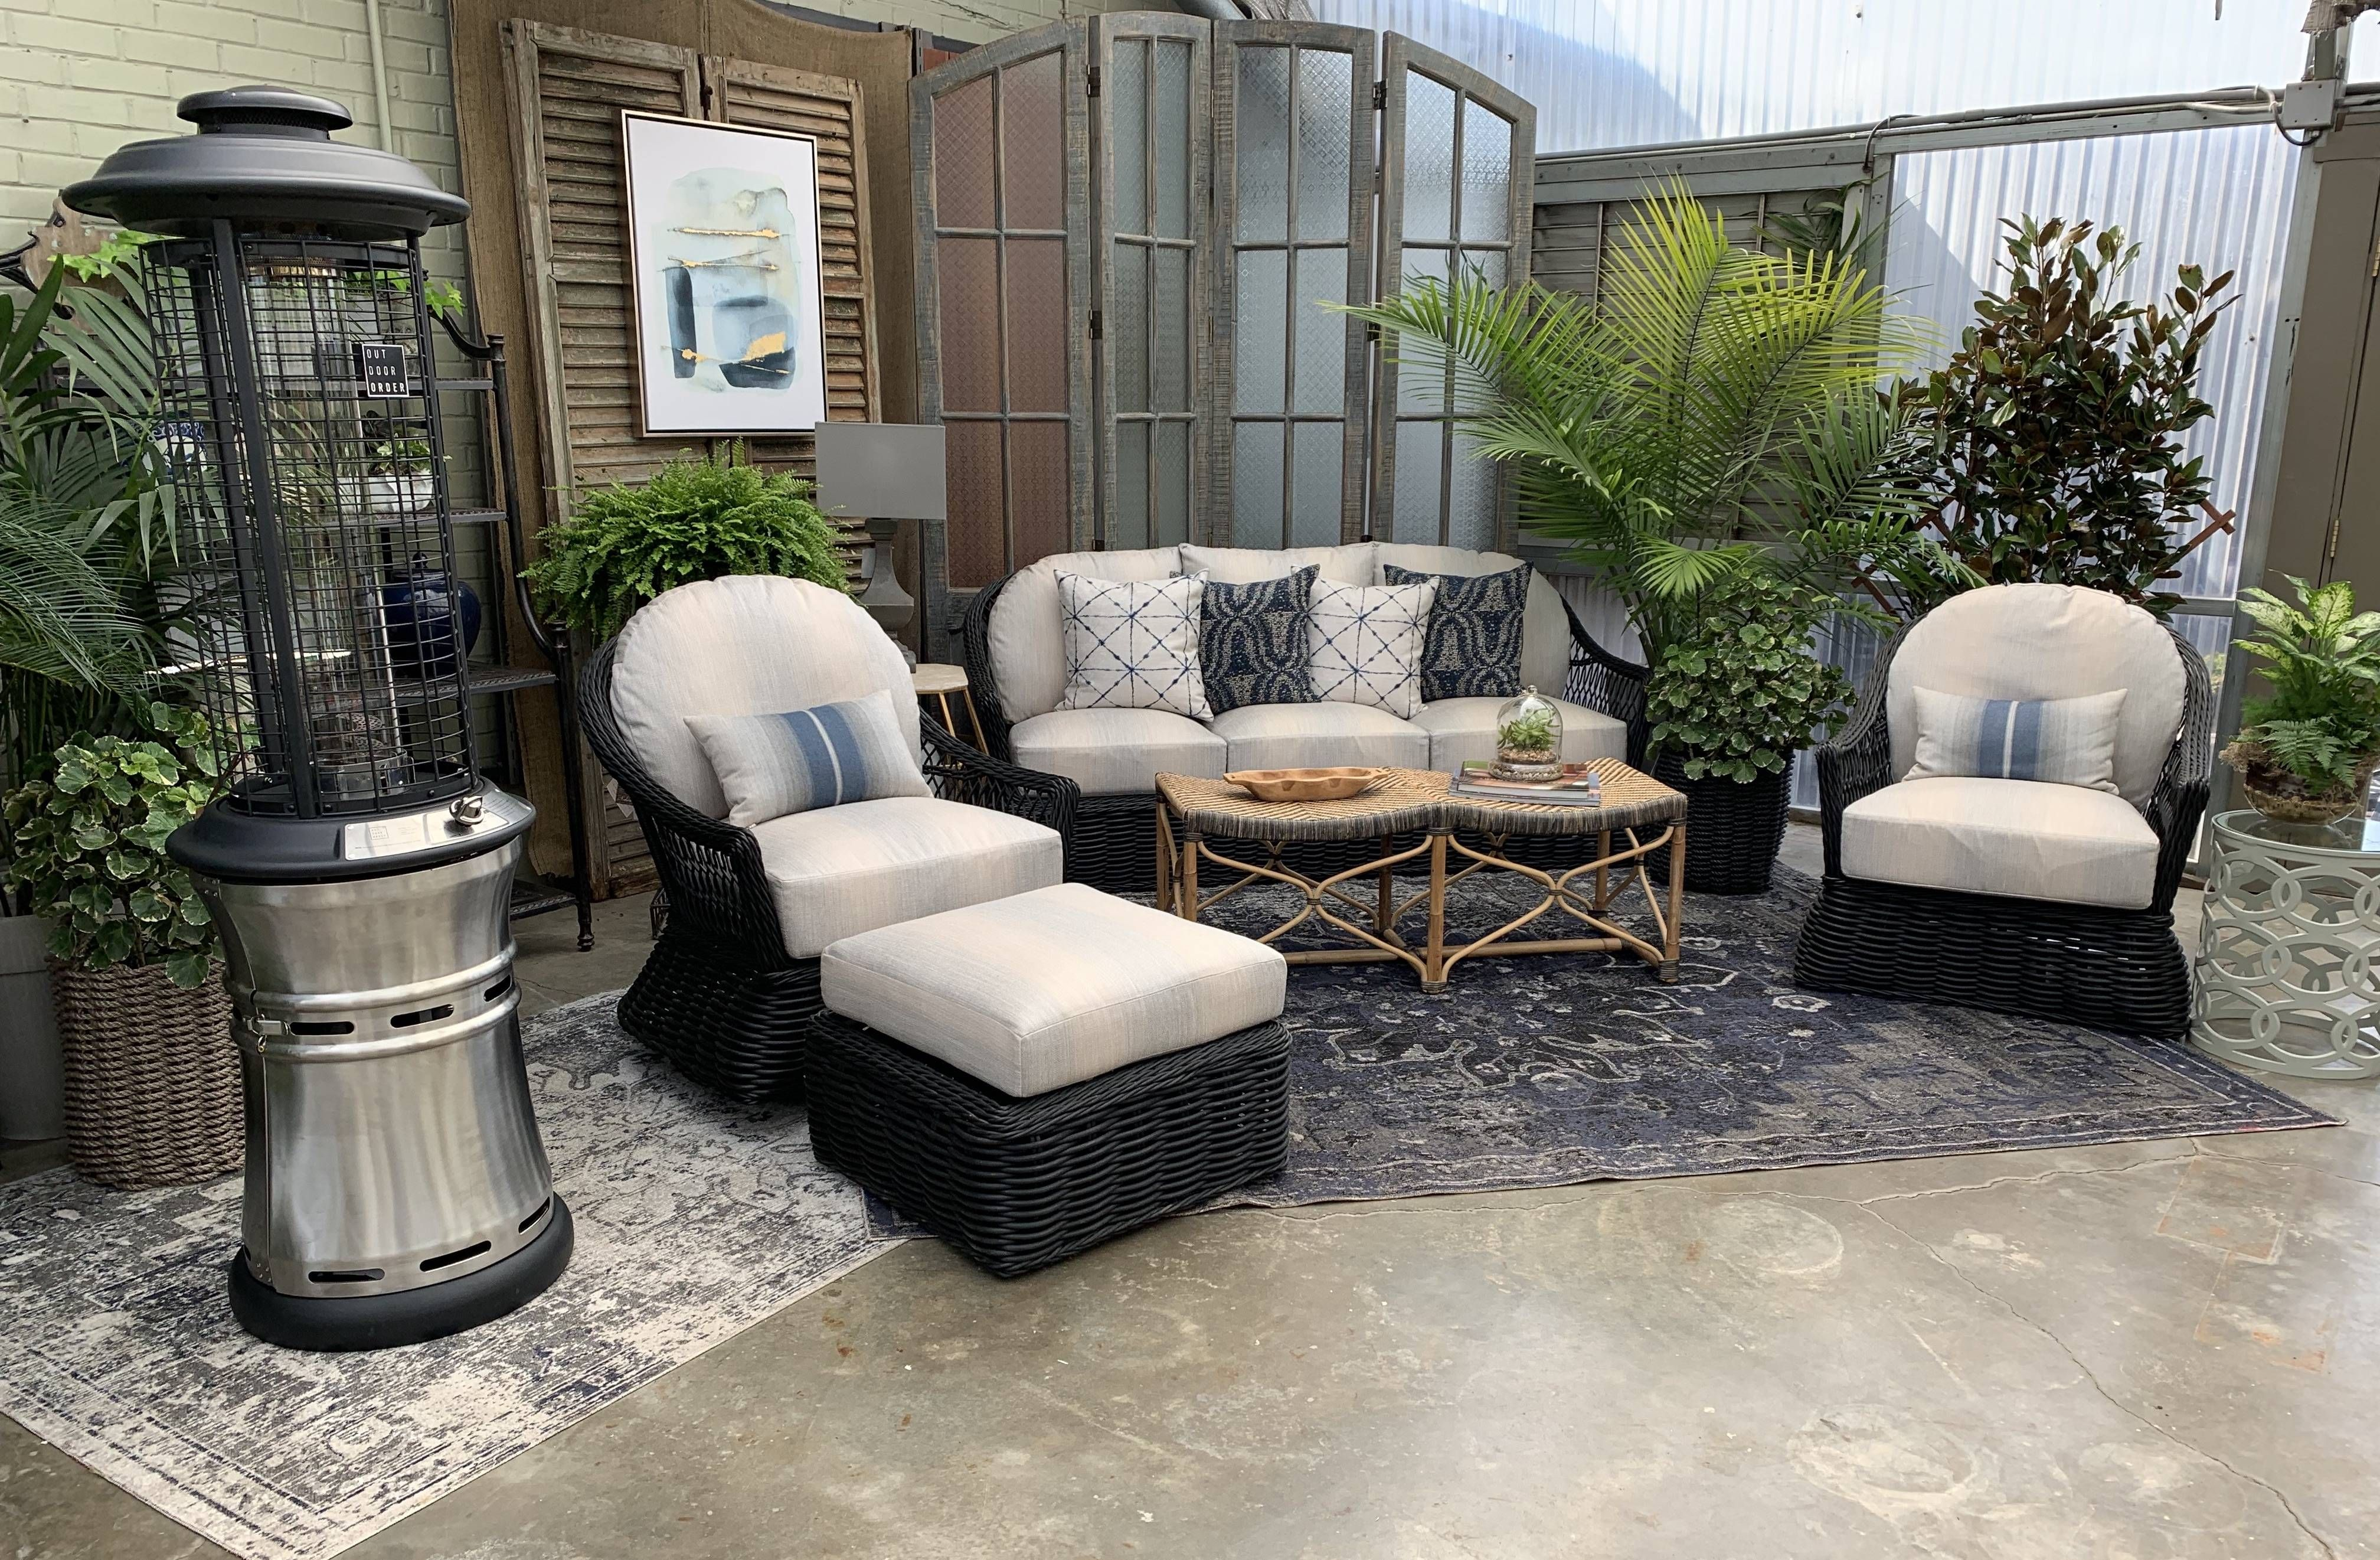 Best Deals On Patio Furniture Near Me Inexpensive Patio